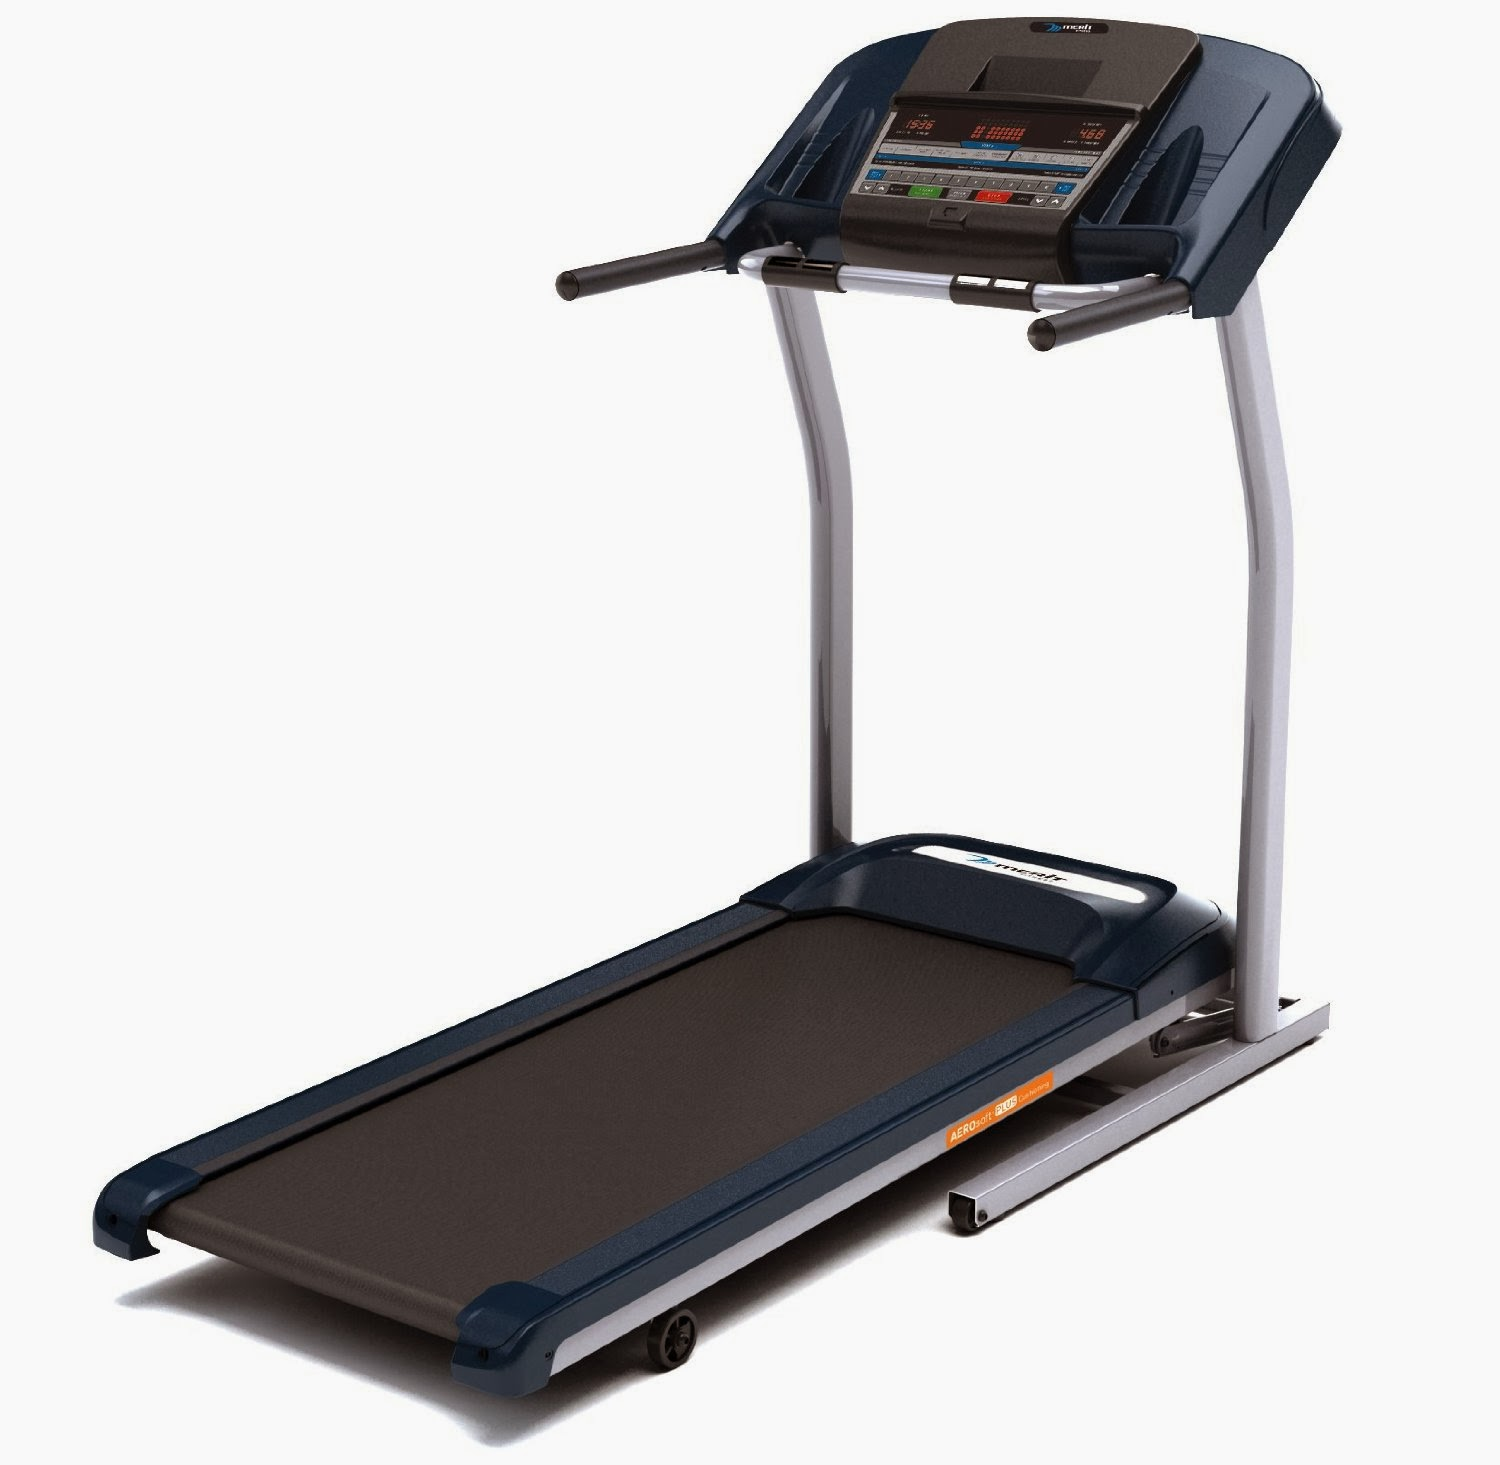 Merit Fitness 725T Plus Treadmill, compare features & differences with 715T Plus Treadmill